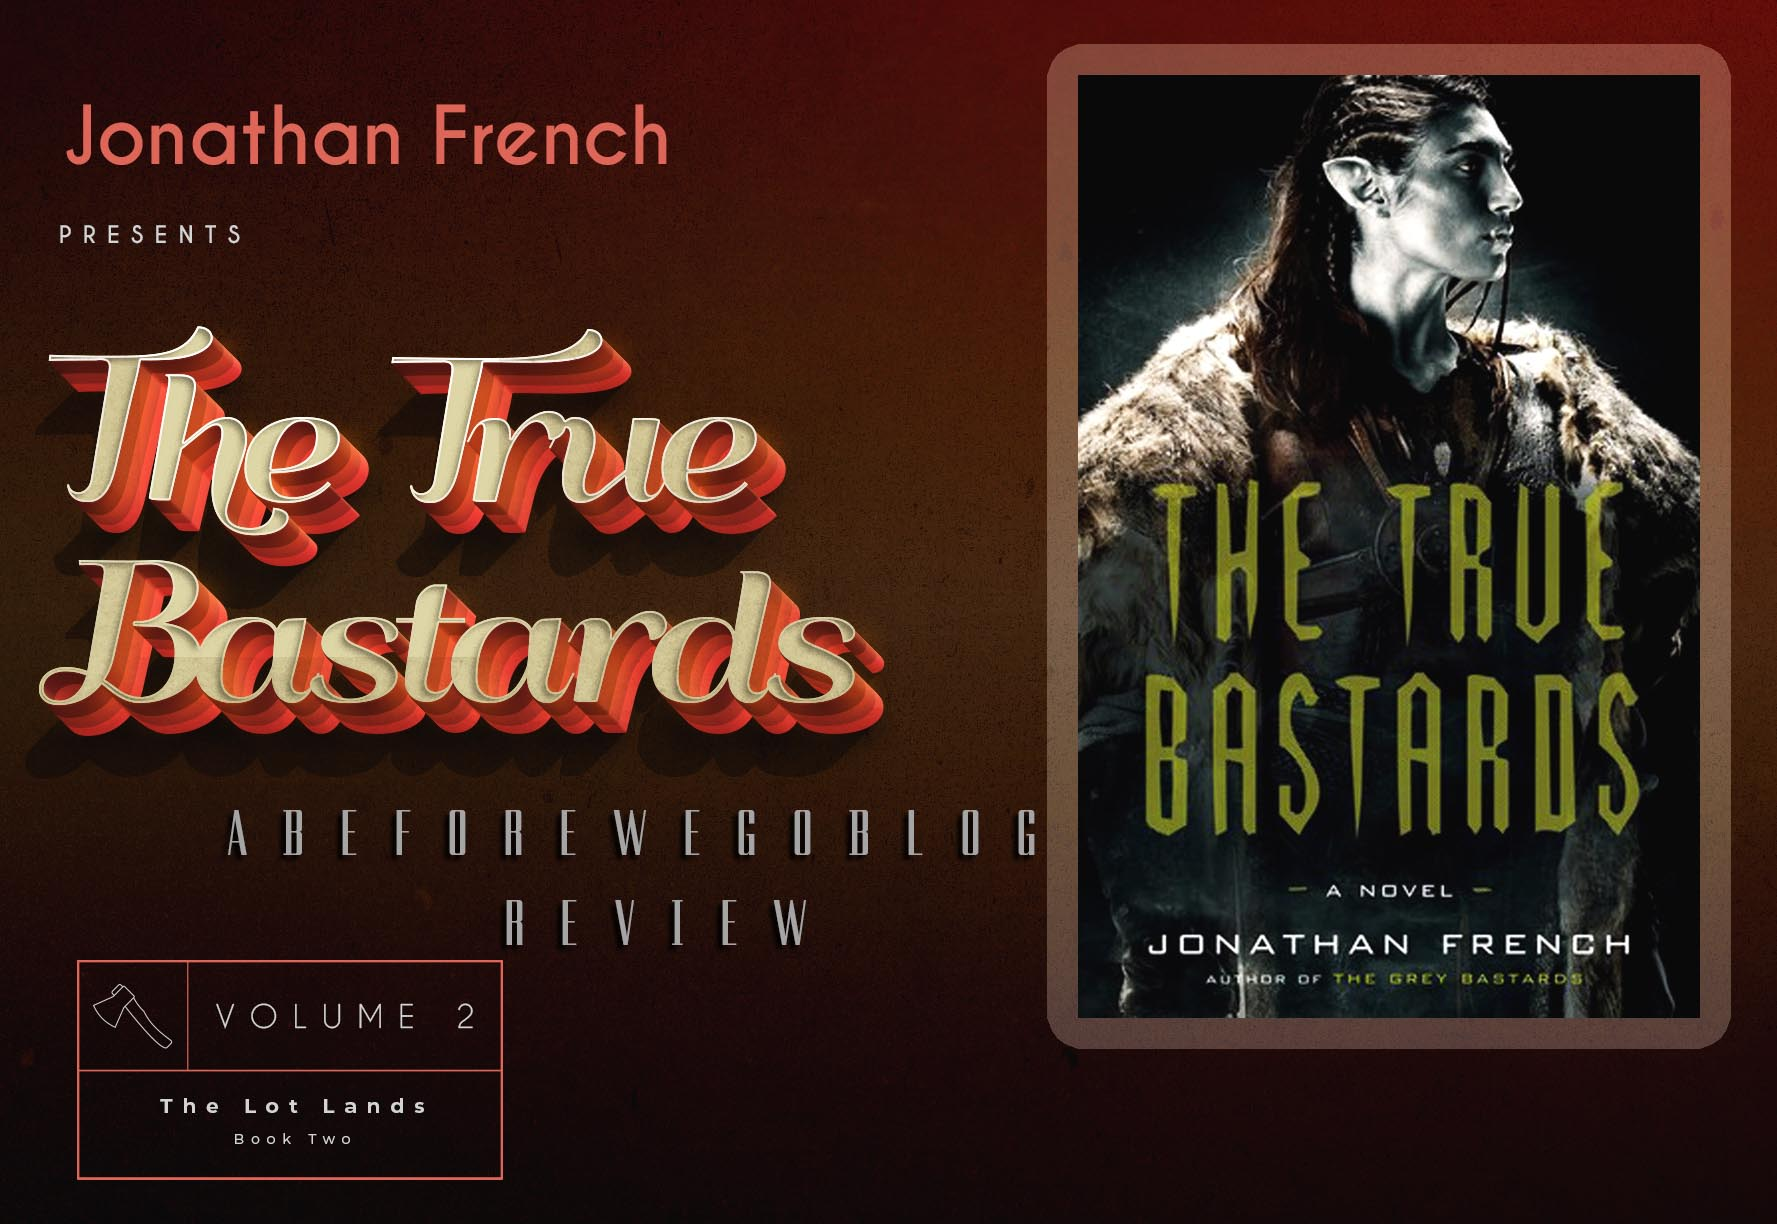 Review of The True Bastards by Jonathan French